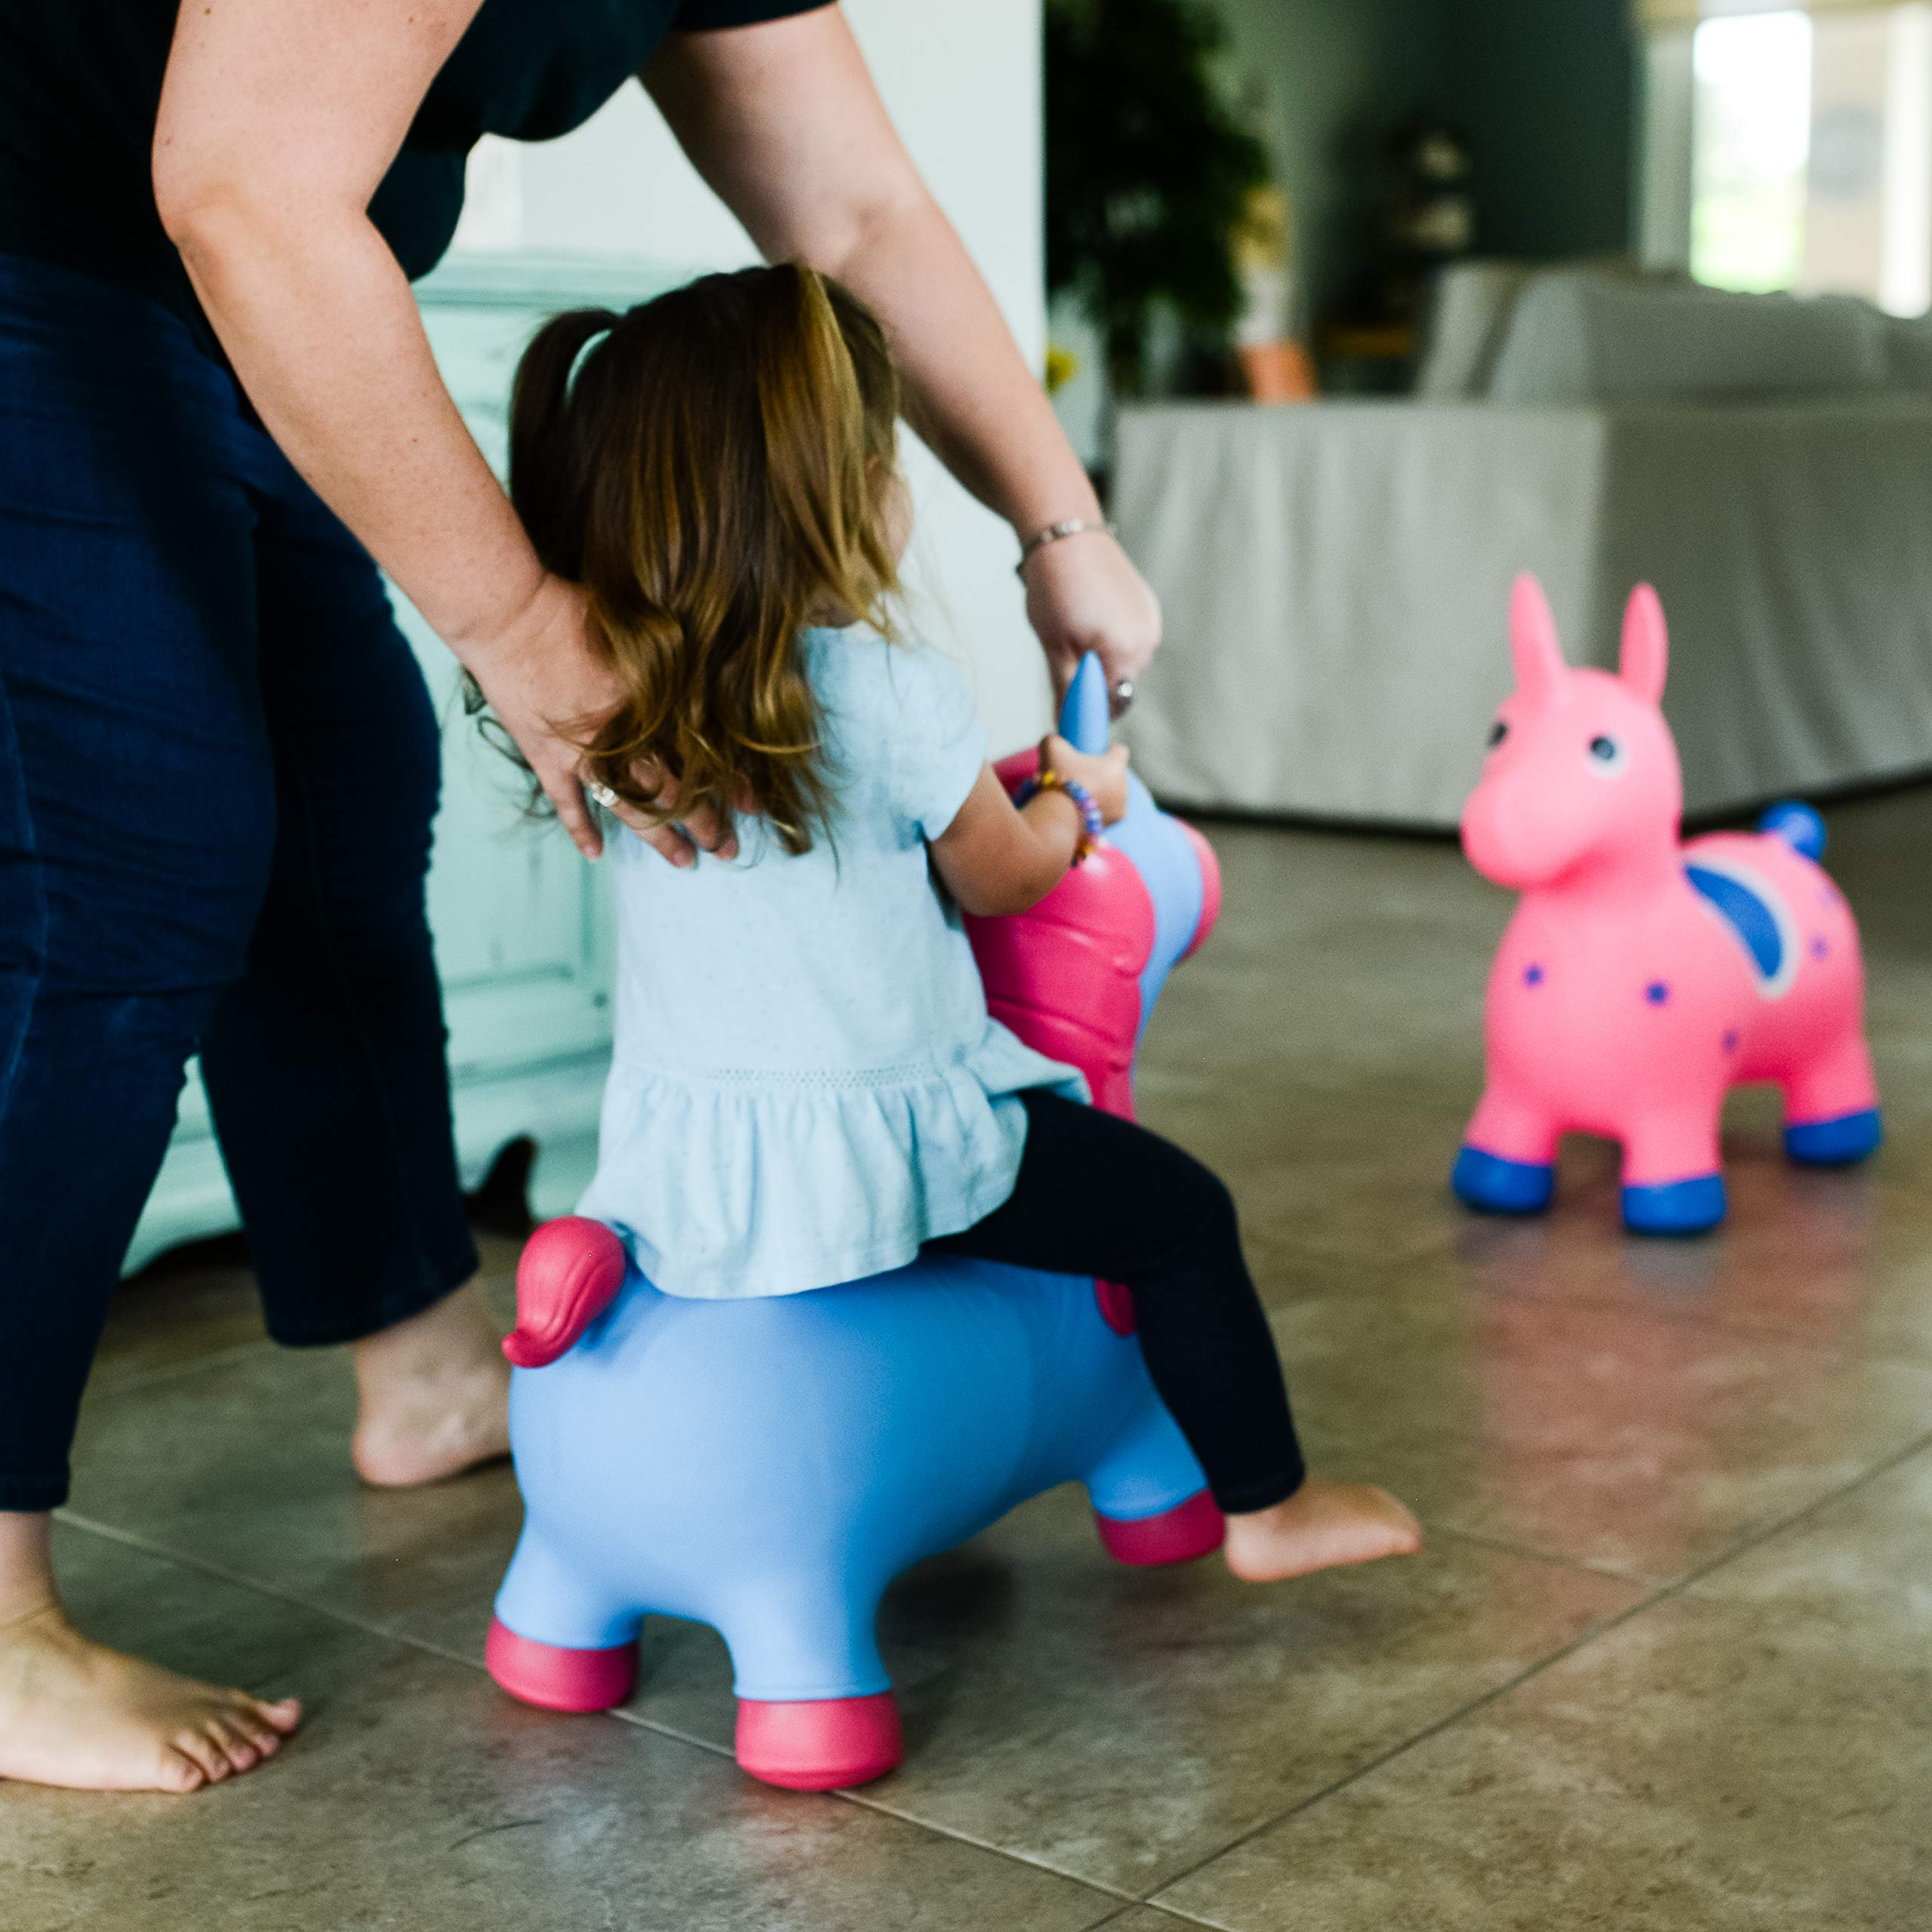 Kiddie Play Hopper Ball Unicorn Inflatable Hoppity Hop Bouncy Horse Toy (Pump Included) by Kiddie Play (Image #9)